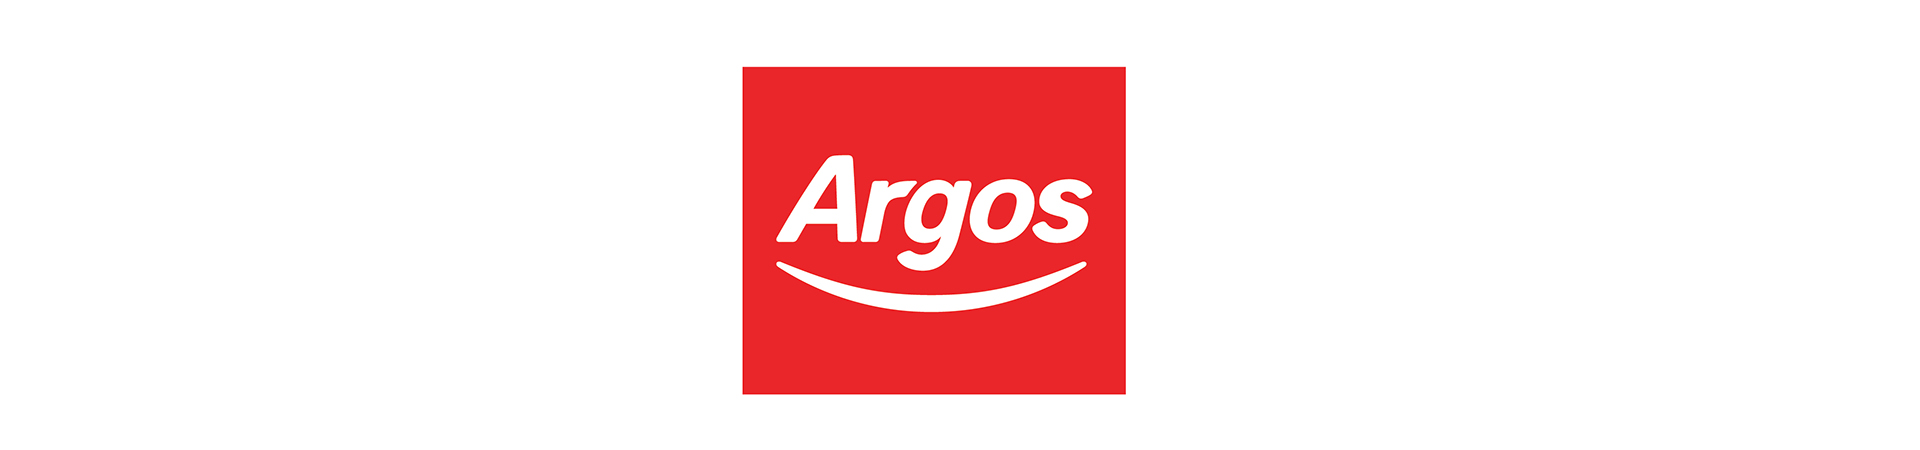 Argos Giftcards